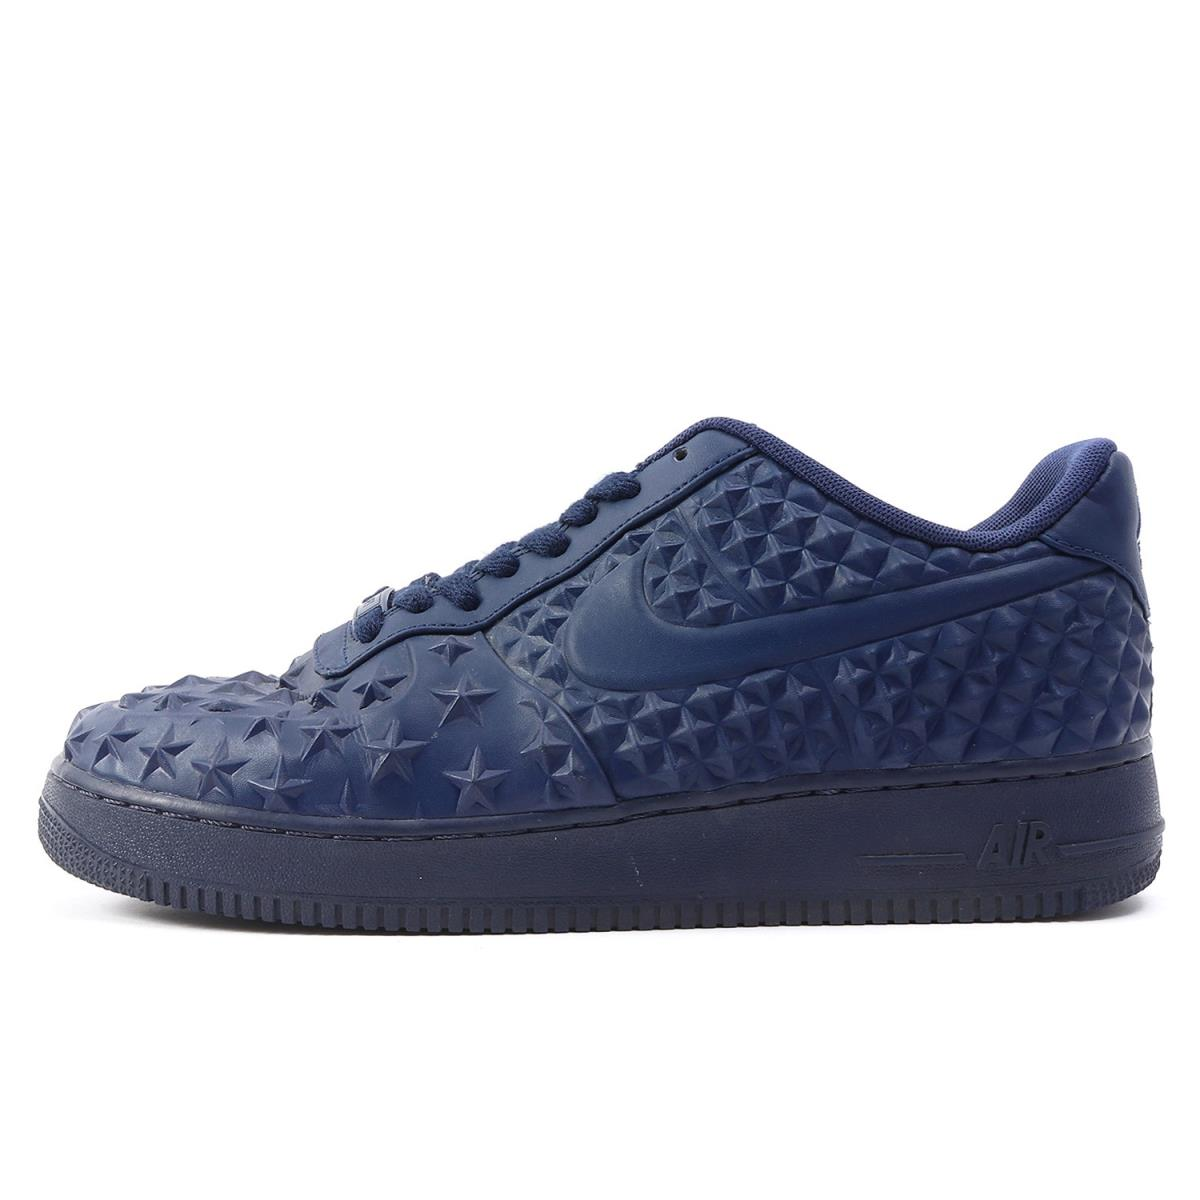 Nike Air Force 1 LV8 VT 'Independence Day'